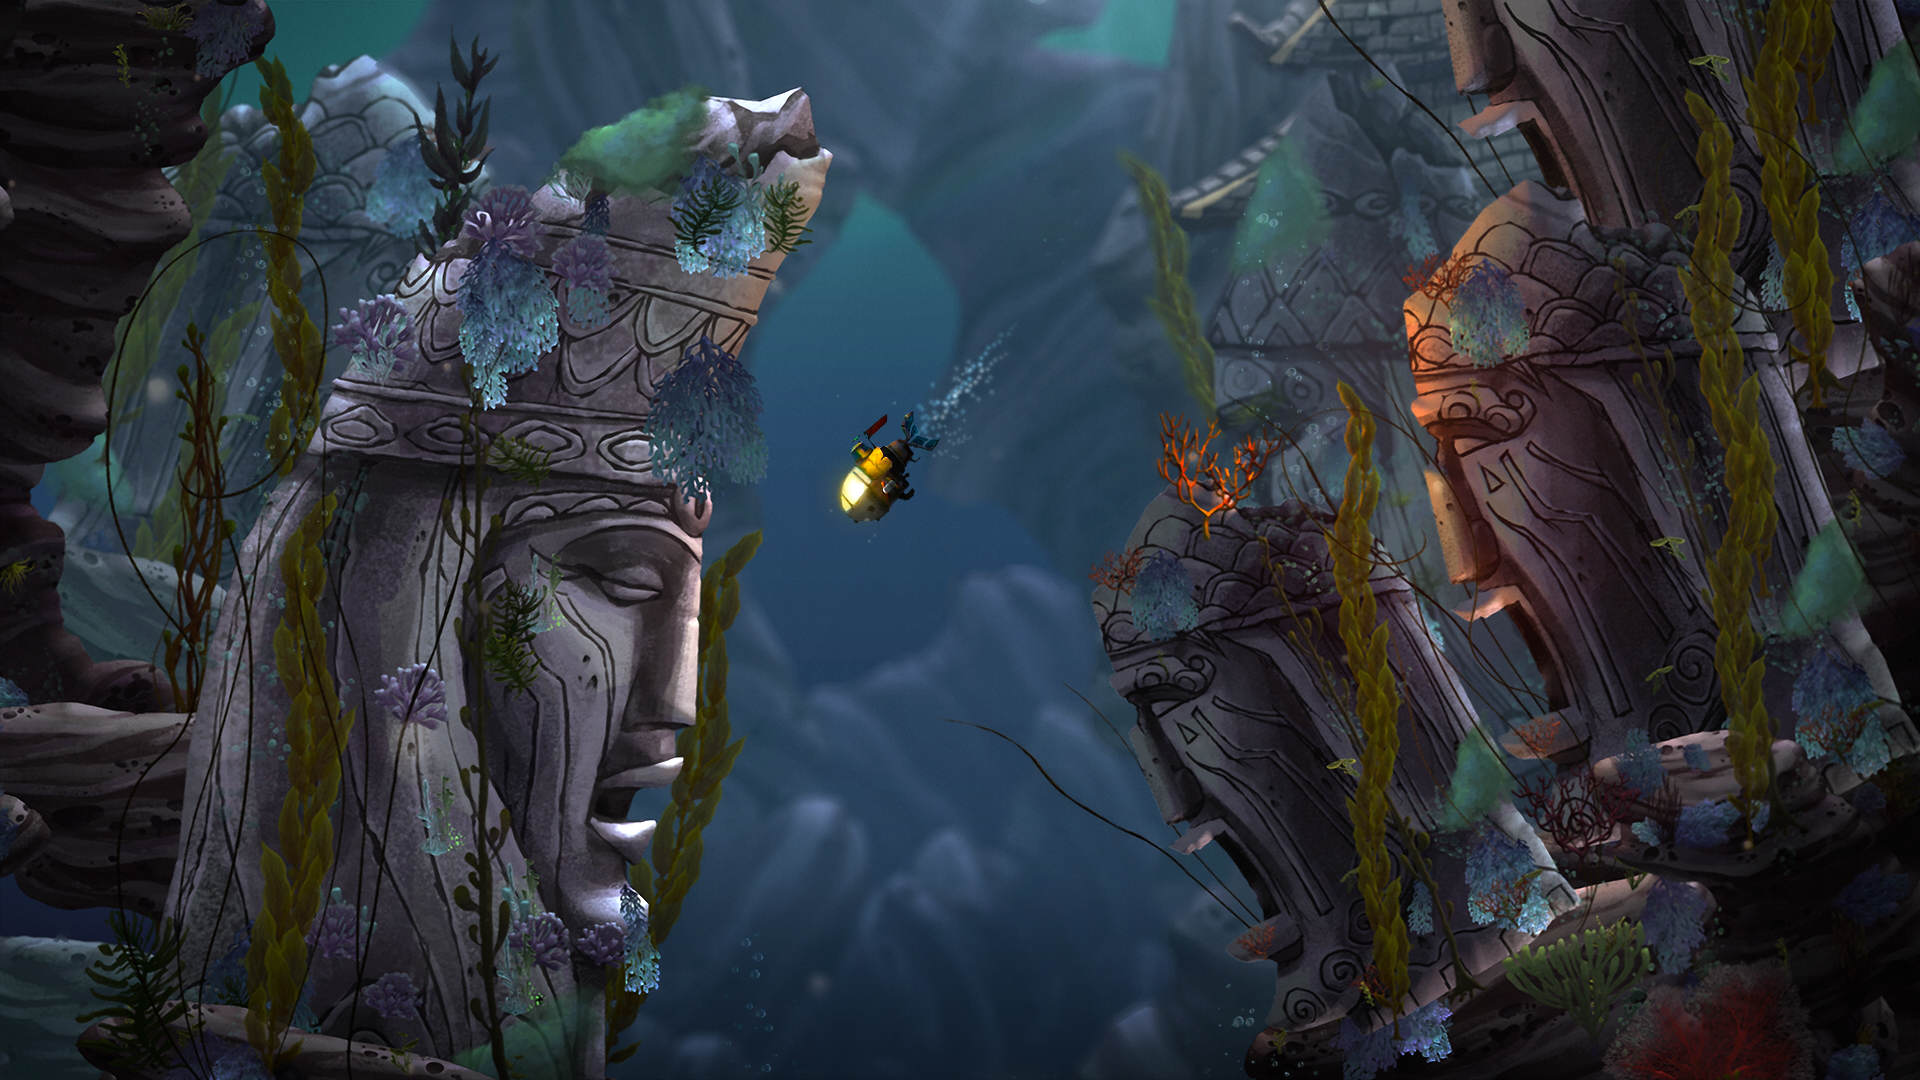 Insomniac Reveal New Game Song Of The Deep, GameStop To Publish SOTD MerrowRuins Statues